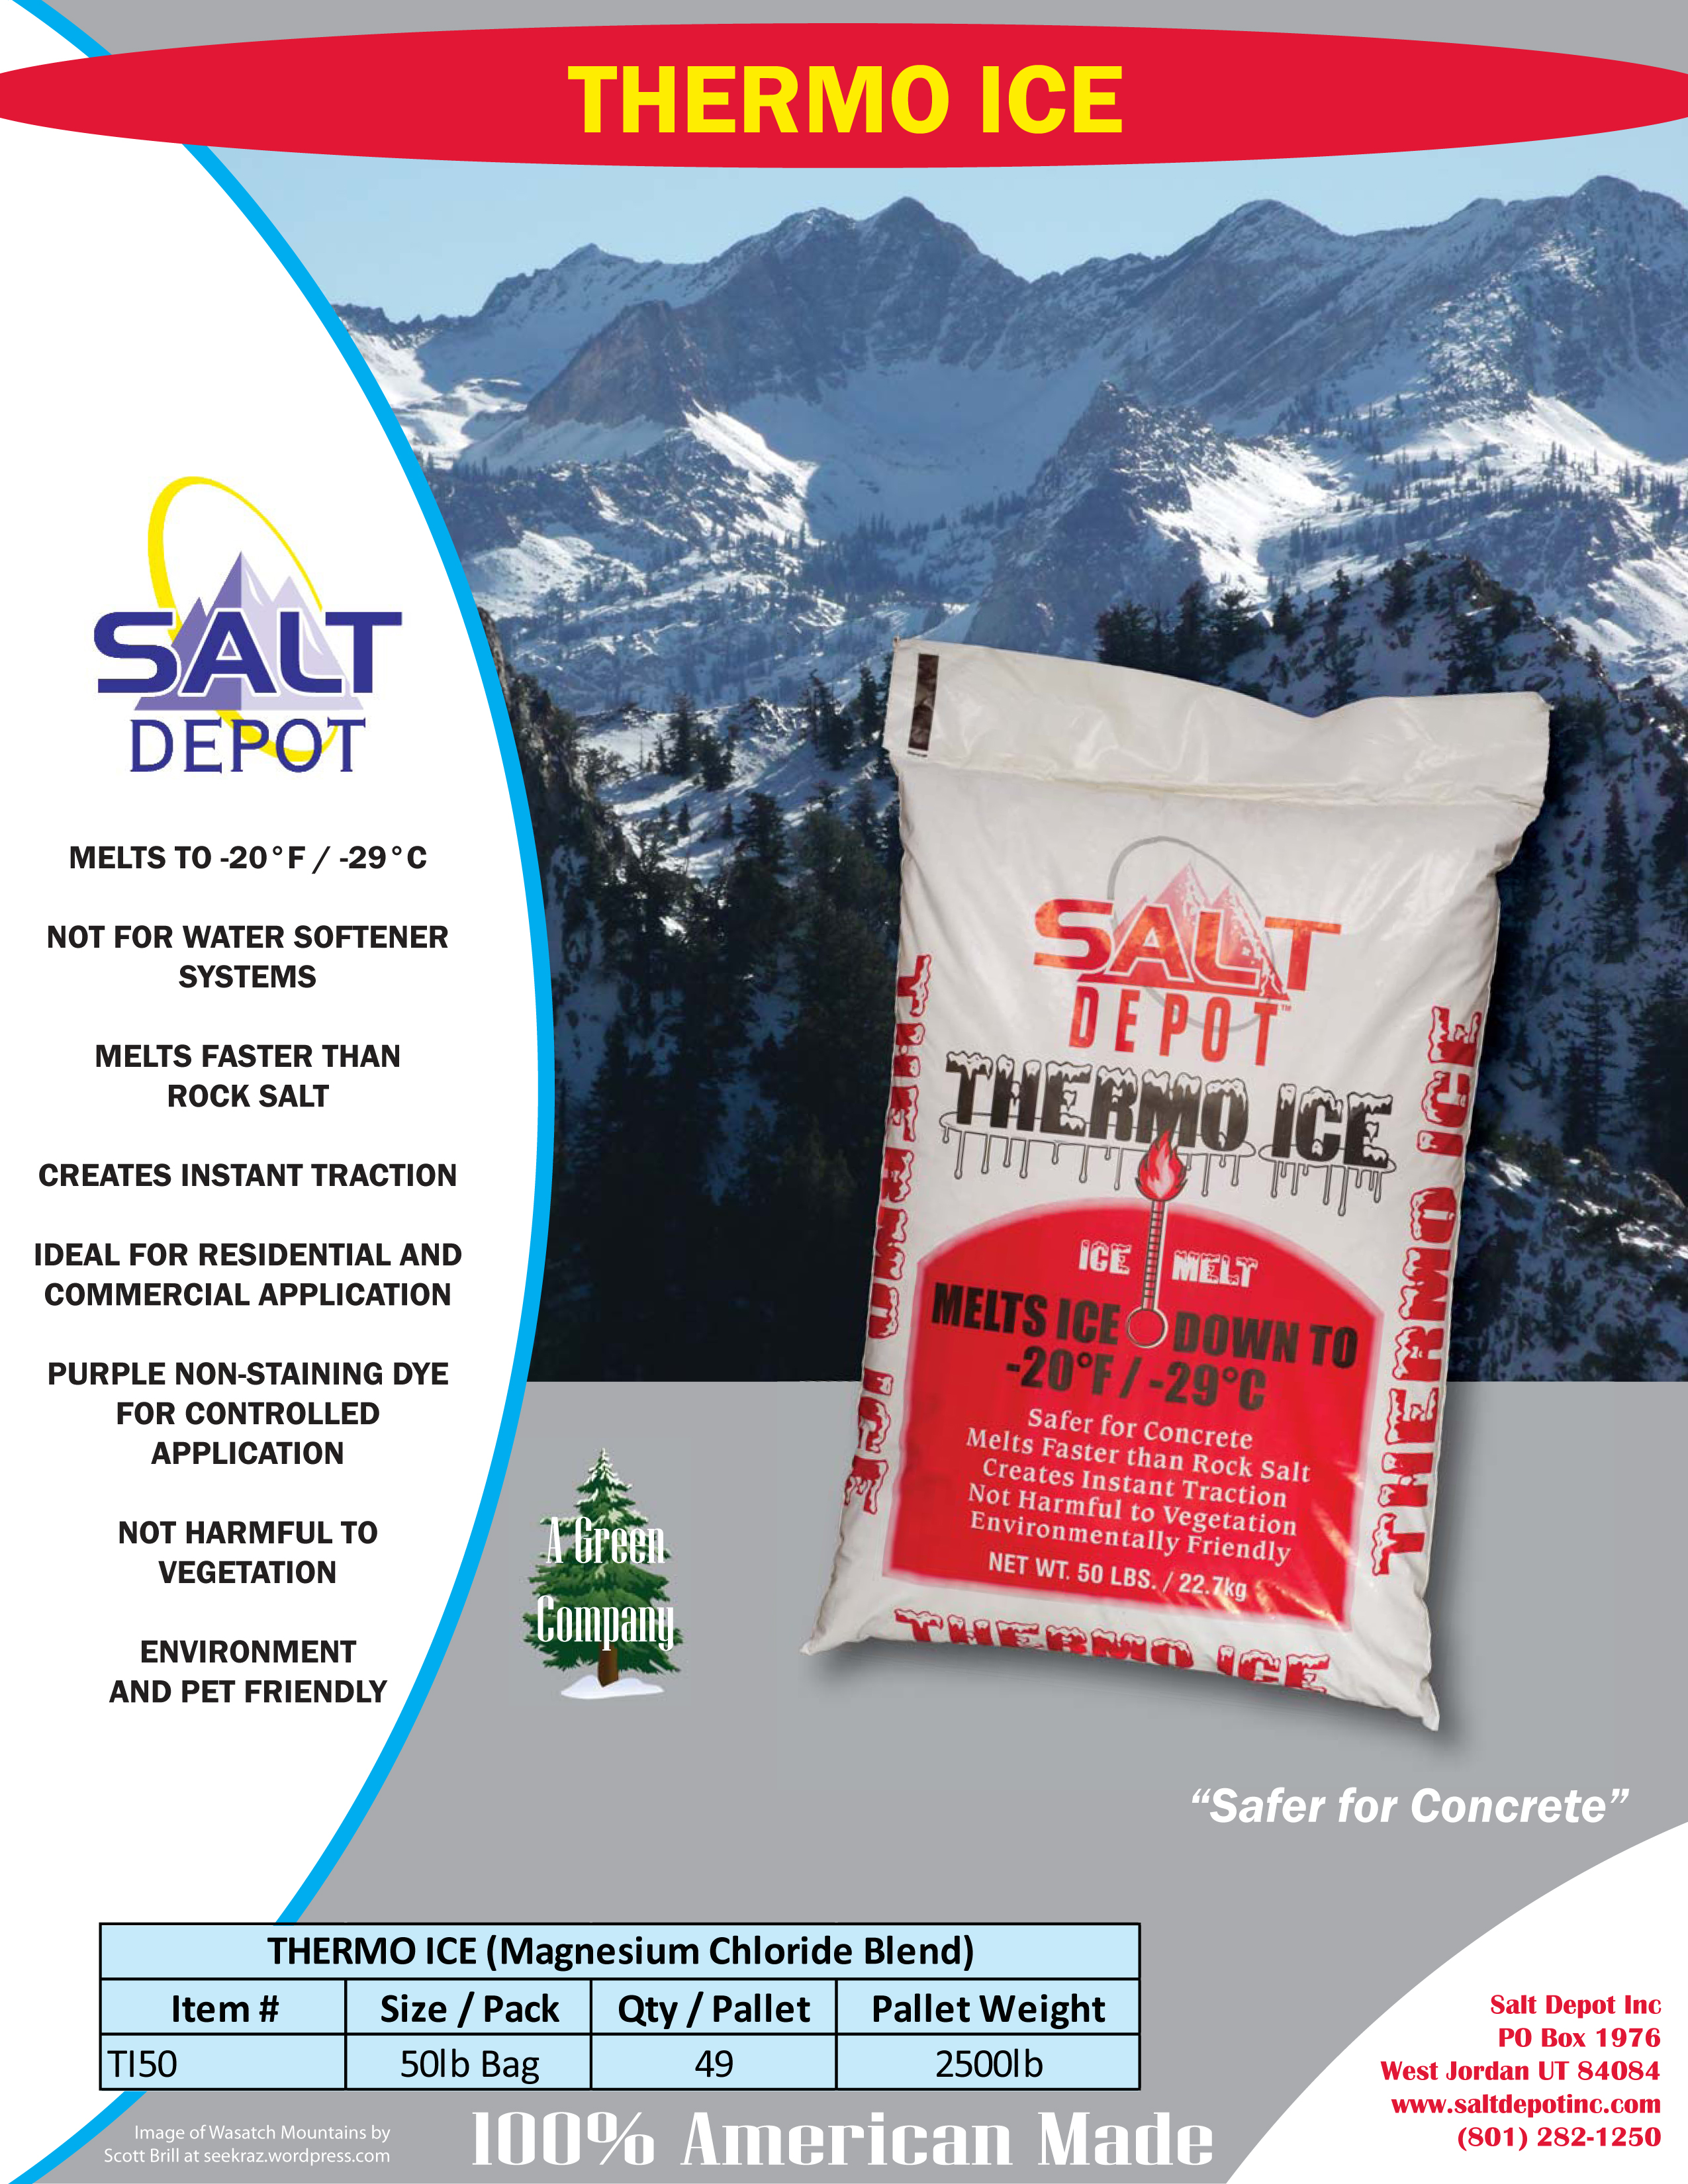 Thermo Ice Ice Melt Flyer